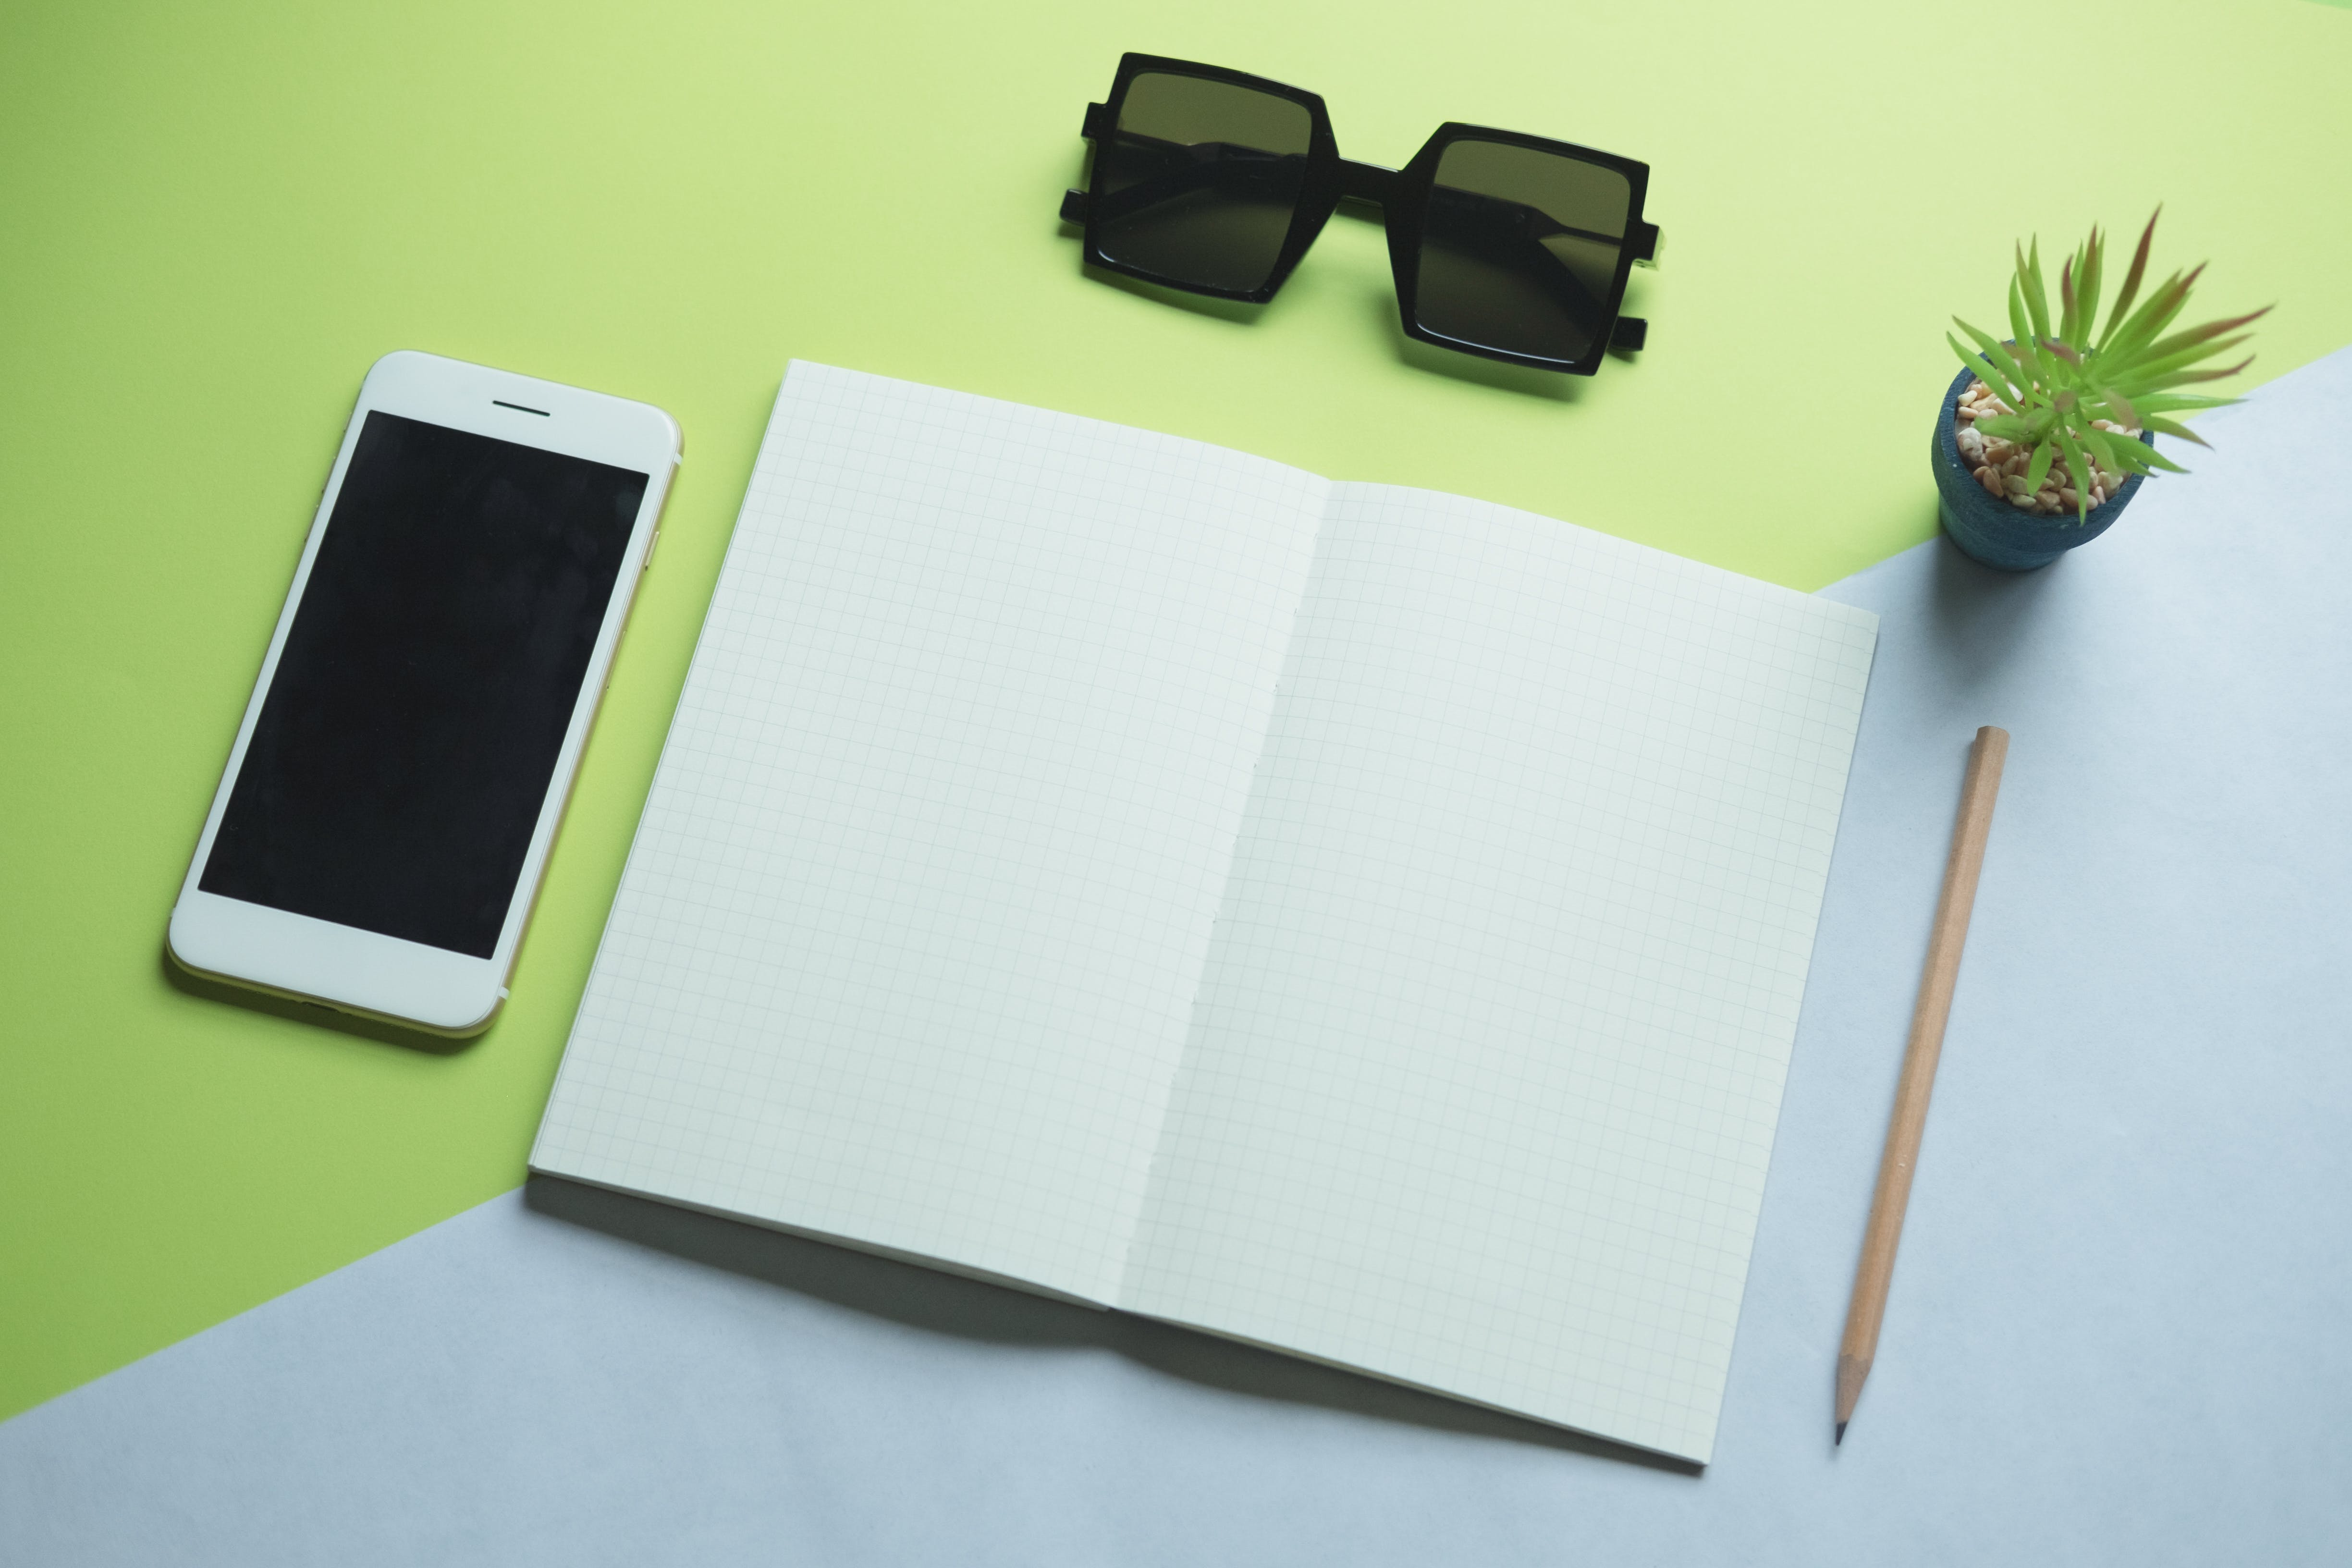 Free stock photo of sunglasses, smartphone, desk, notebook